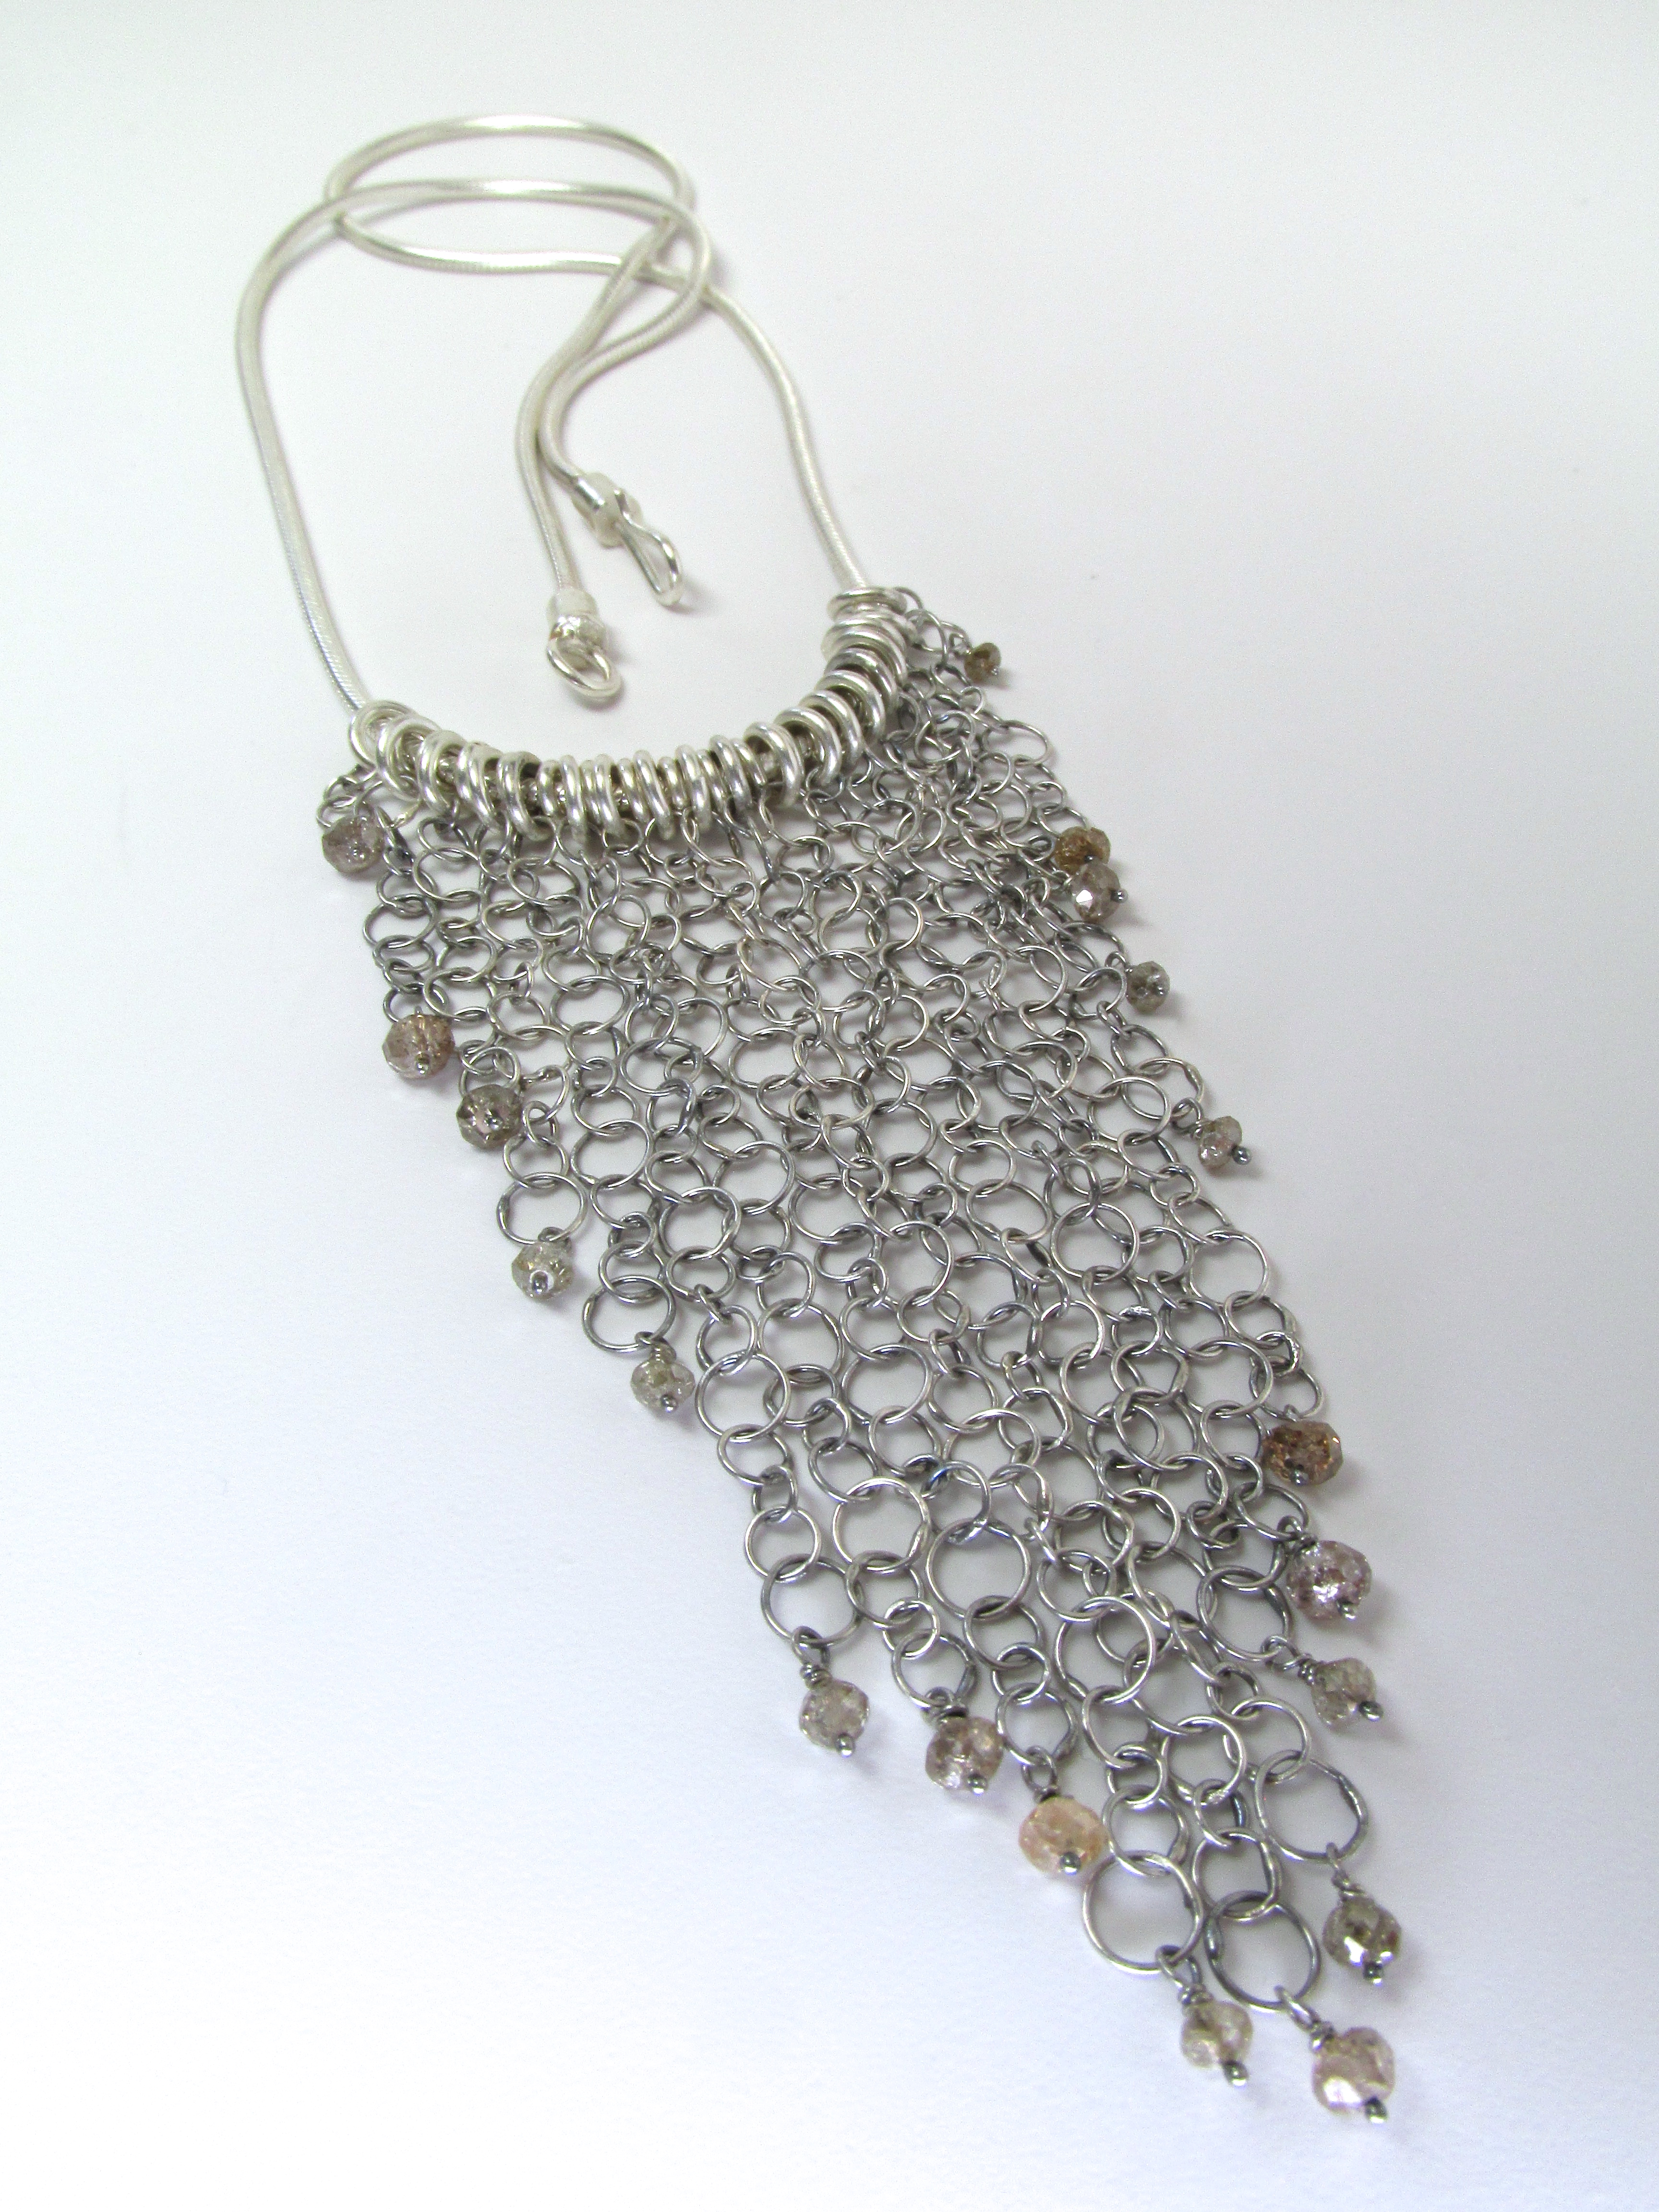 Handmade Chain With Diamond Beads